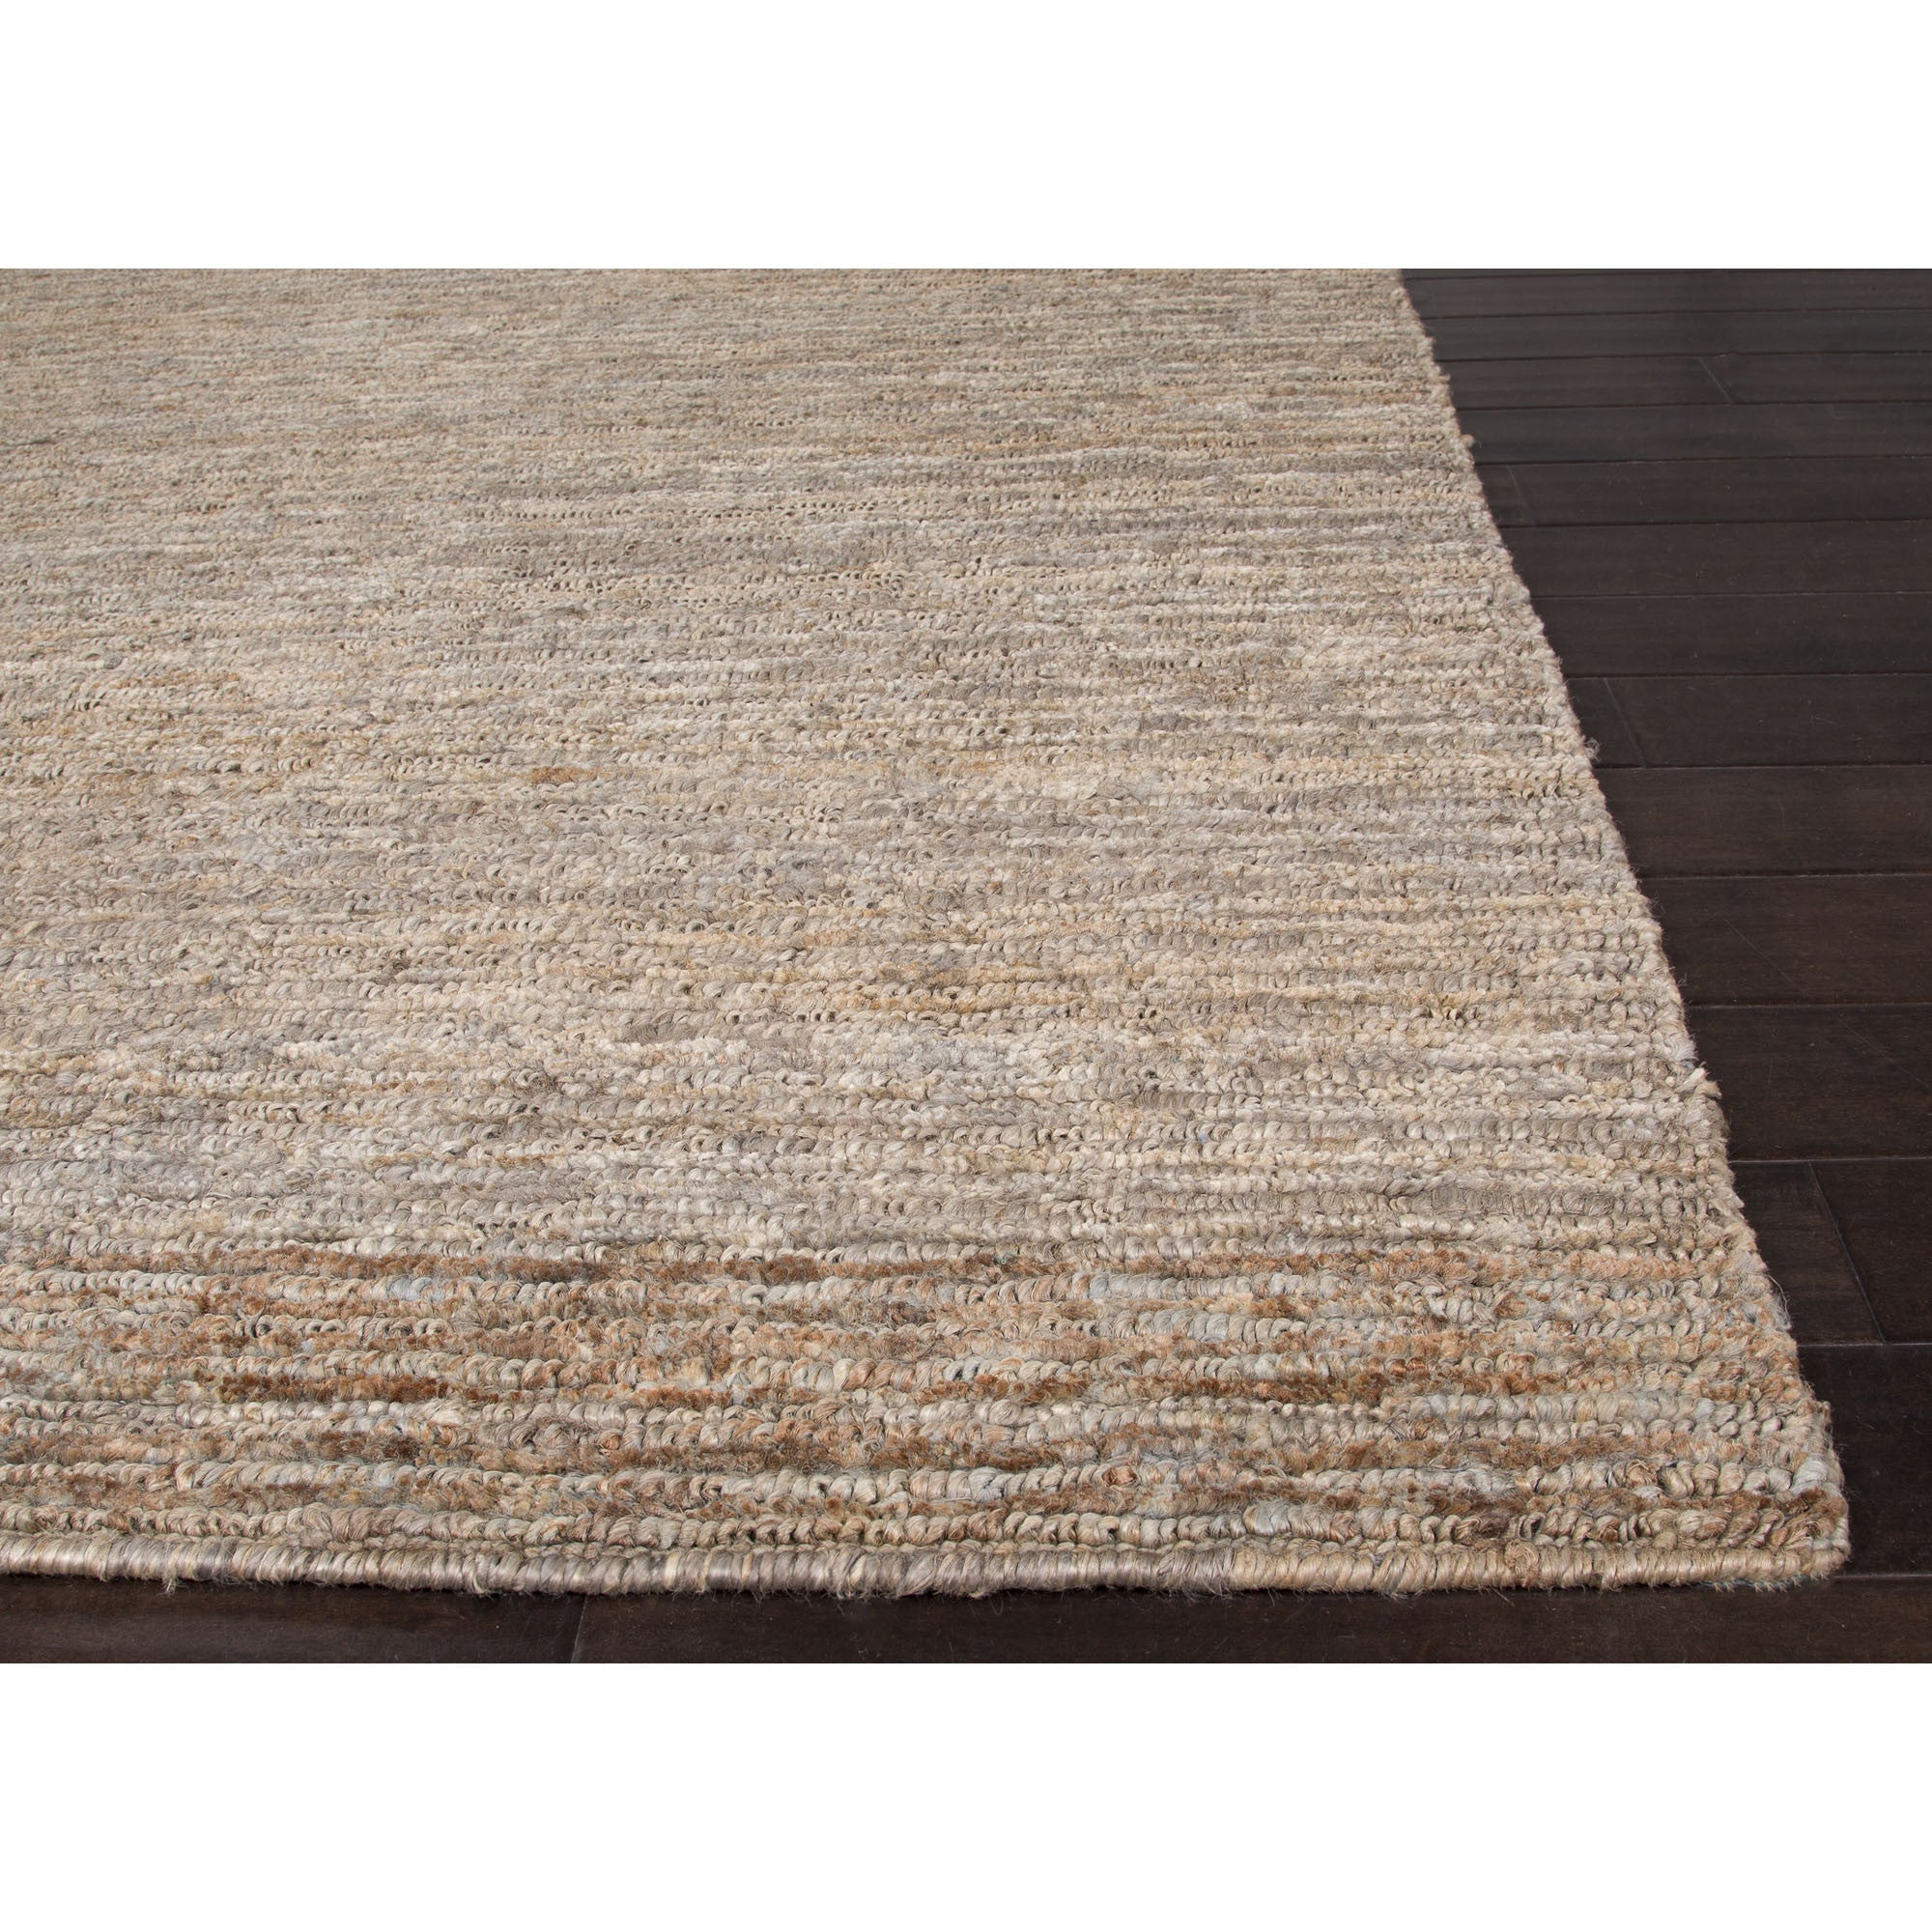 Jaipur Rugs Naturals Solid Pattern Taupe/Gray Hemp Area